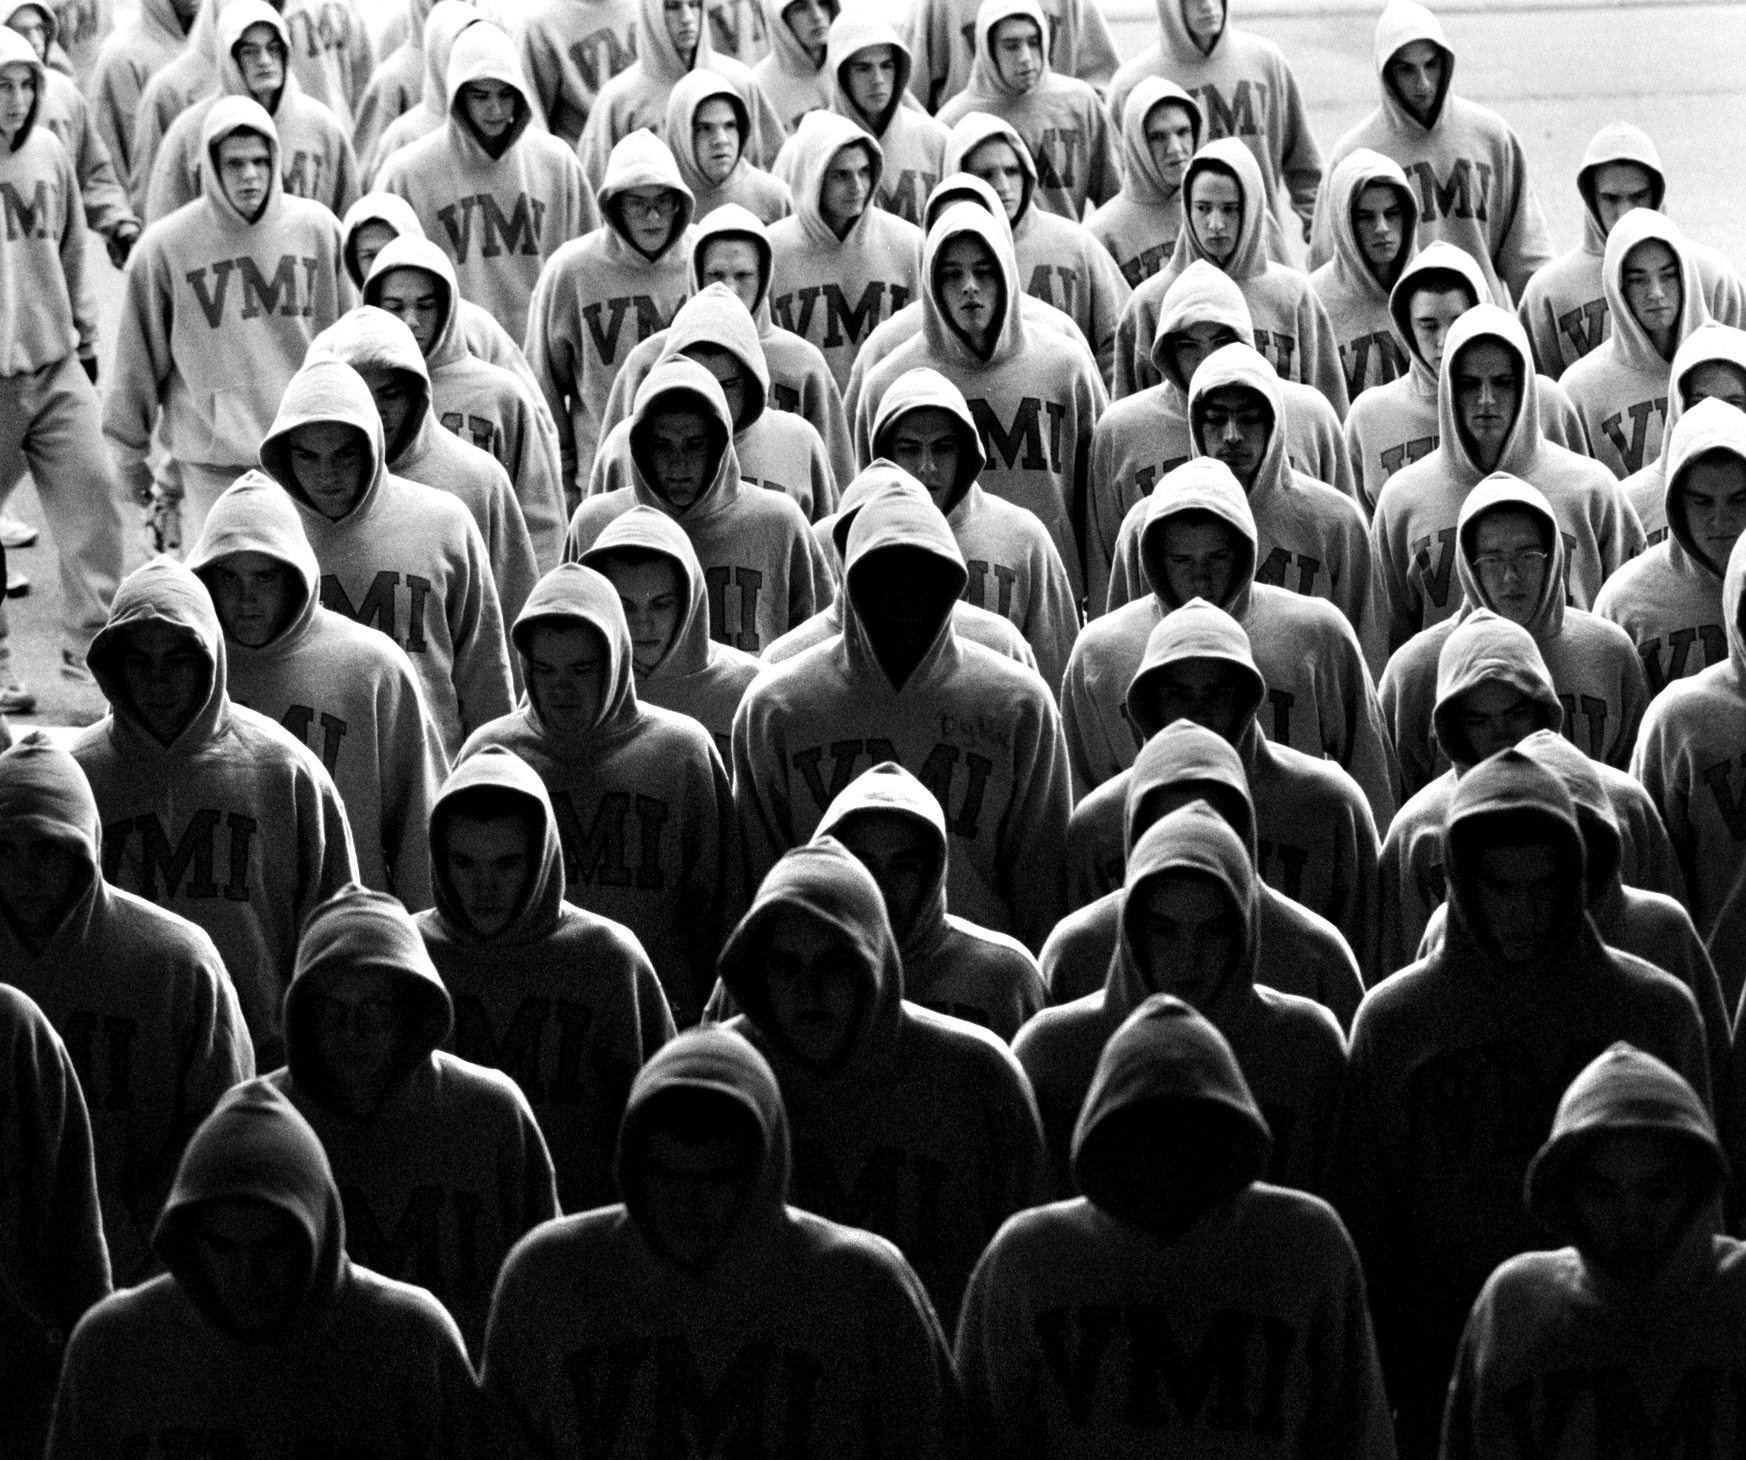 The (then) all male student body at Virginia Military Institute. © Nancy Andrews/The Washington Post